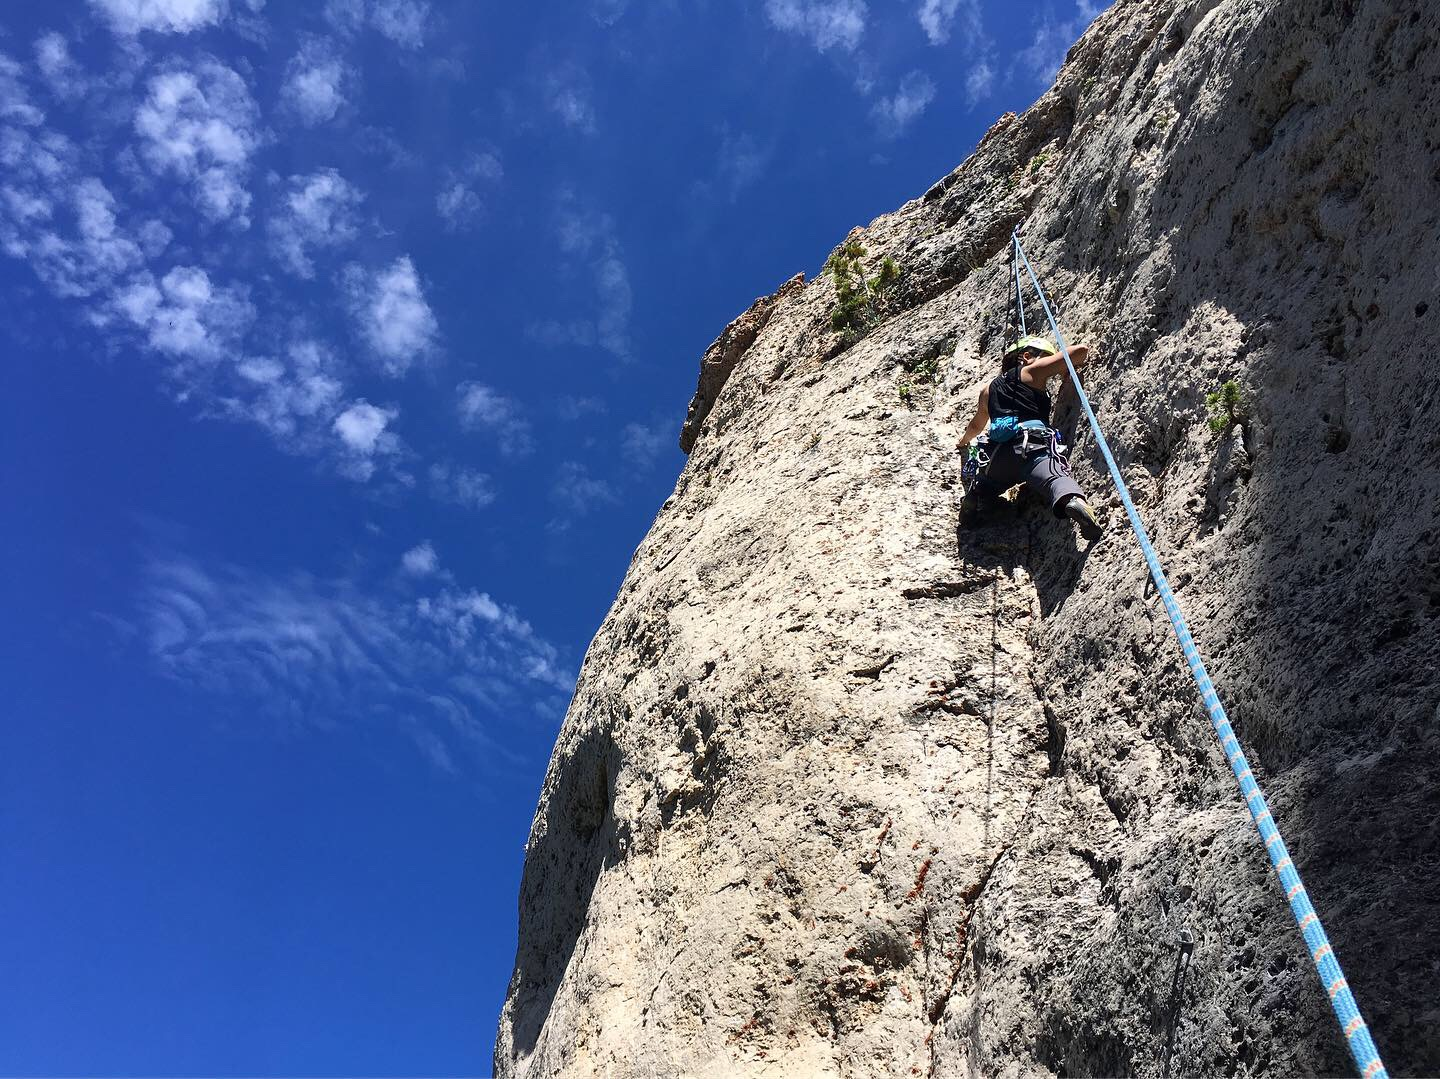 Jess on our first climb in Wild Iris!